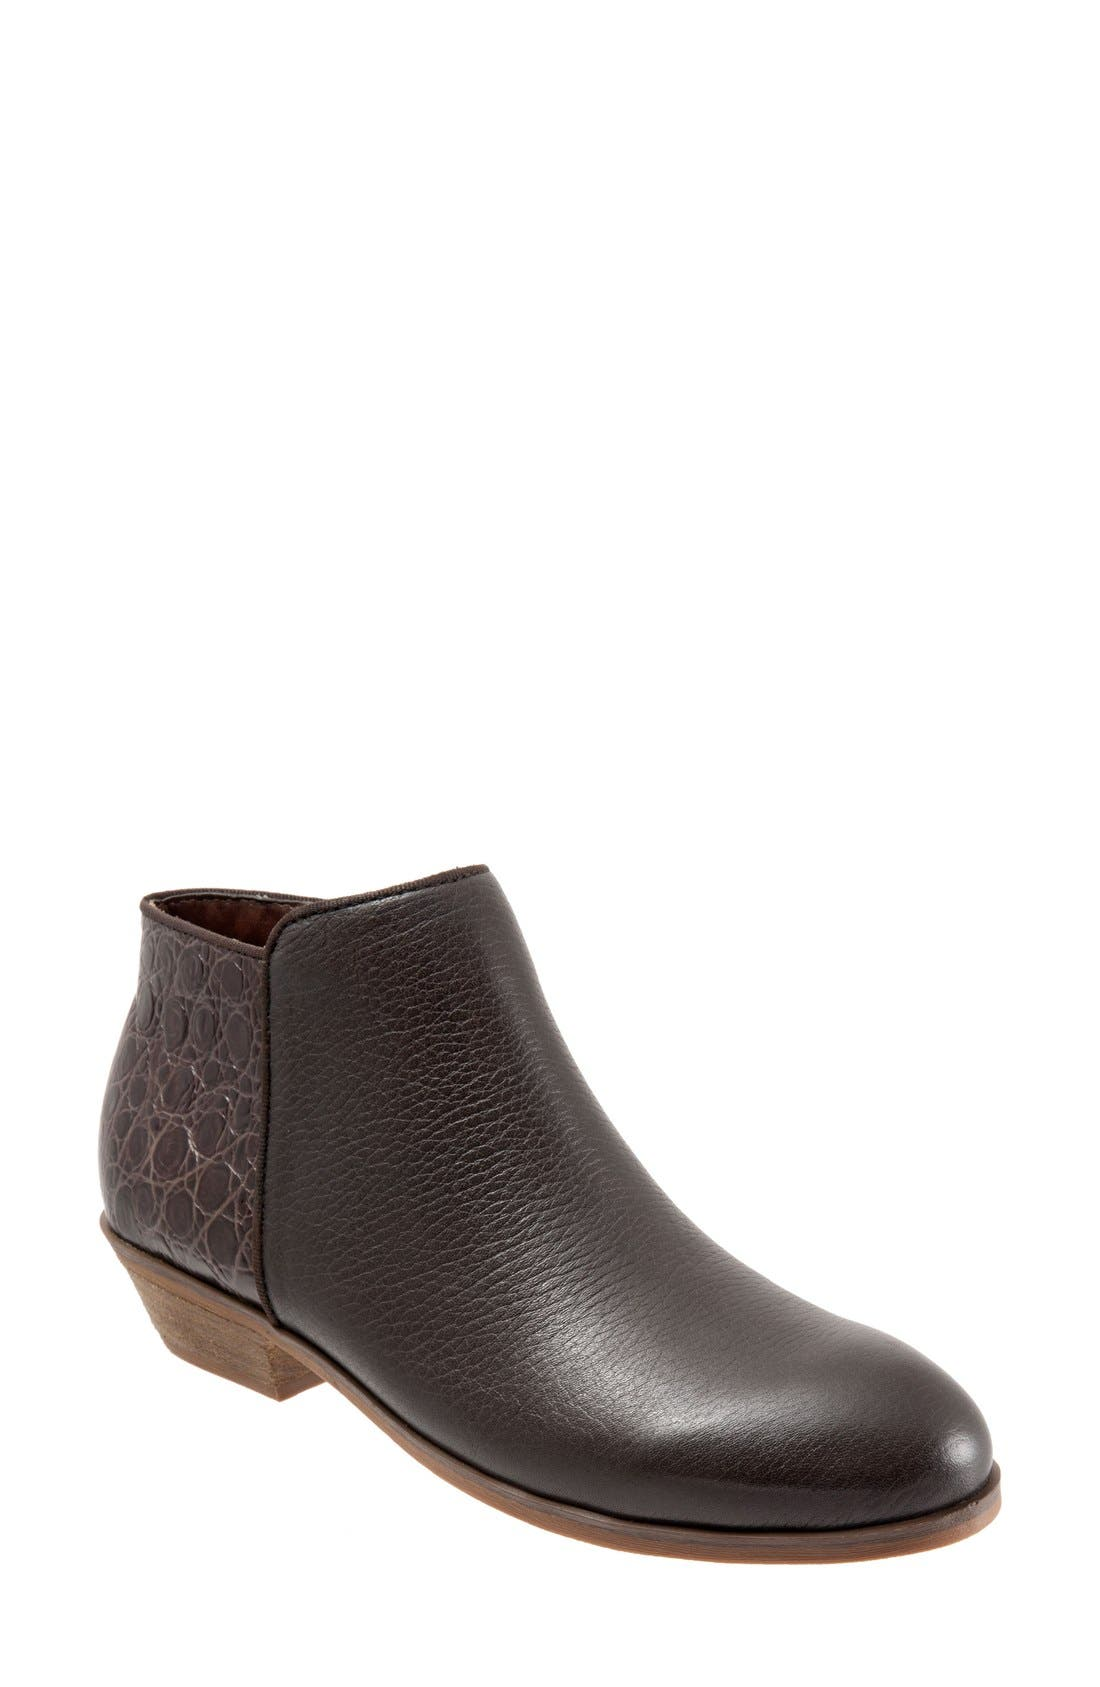 'Rocklin' Bootie,                             Main thumbnail 1, color,                             Brown Croco Leather